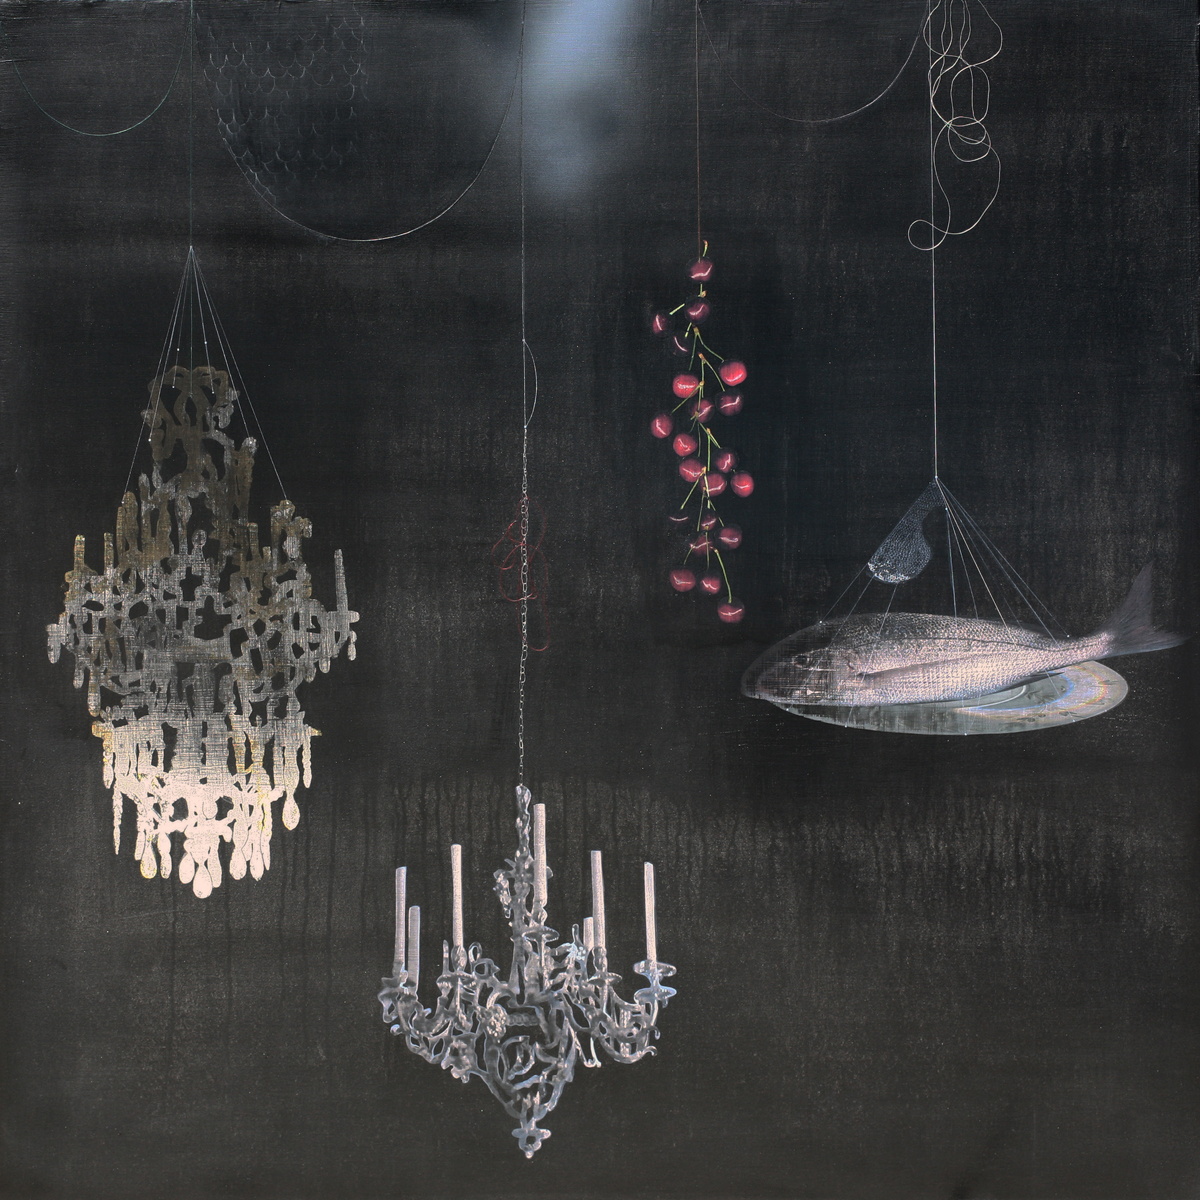 Fish and Chandelier #101